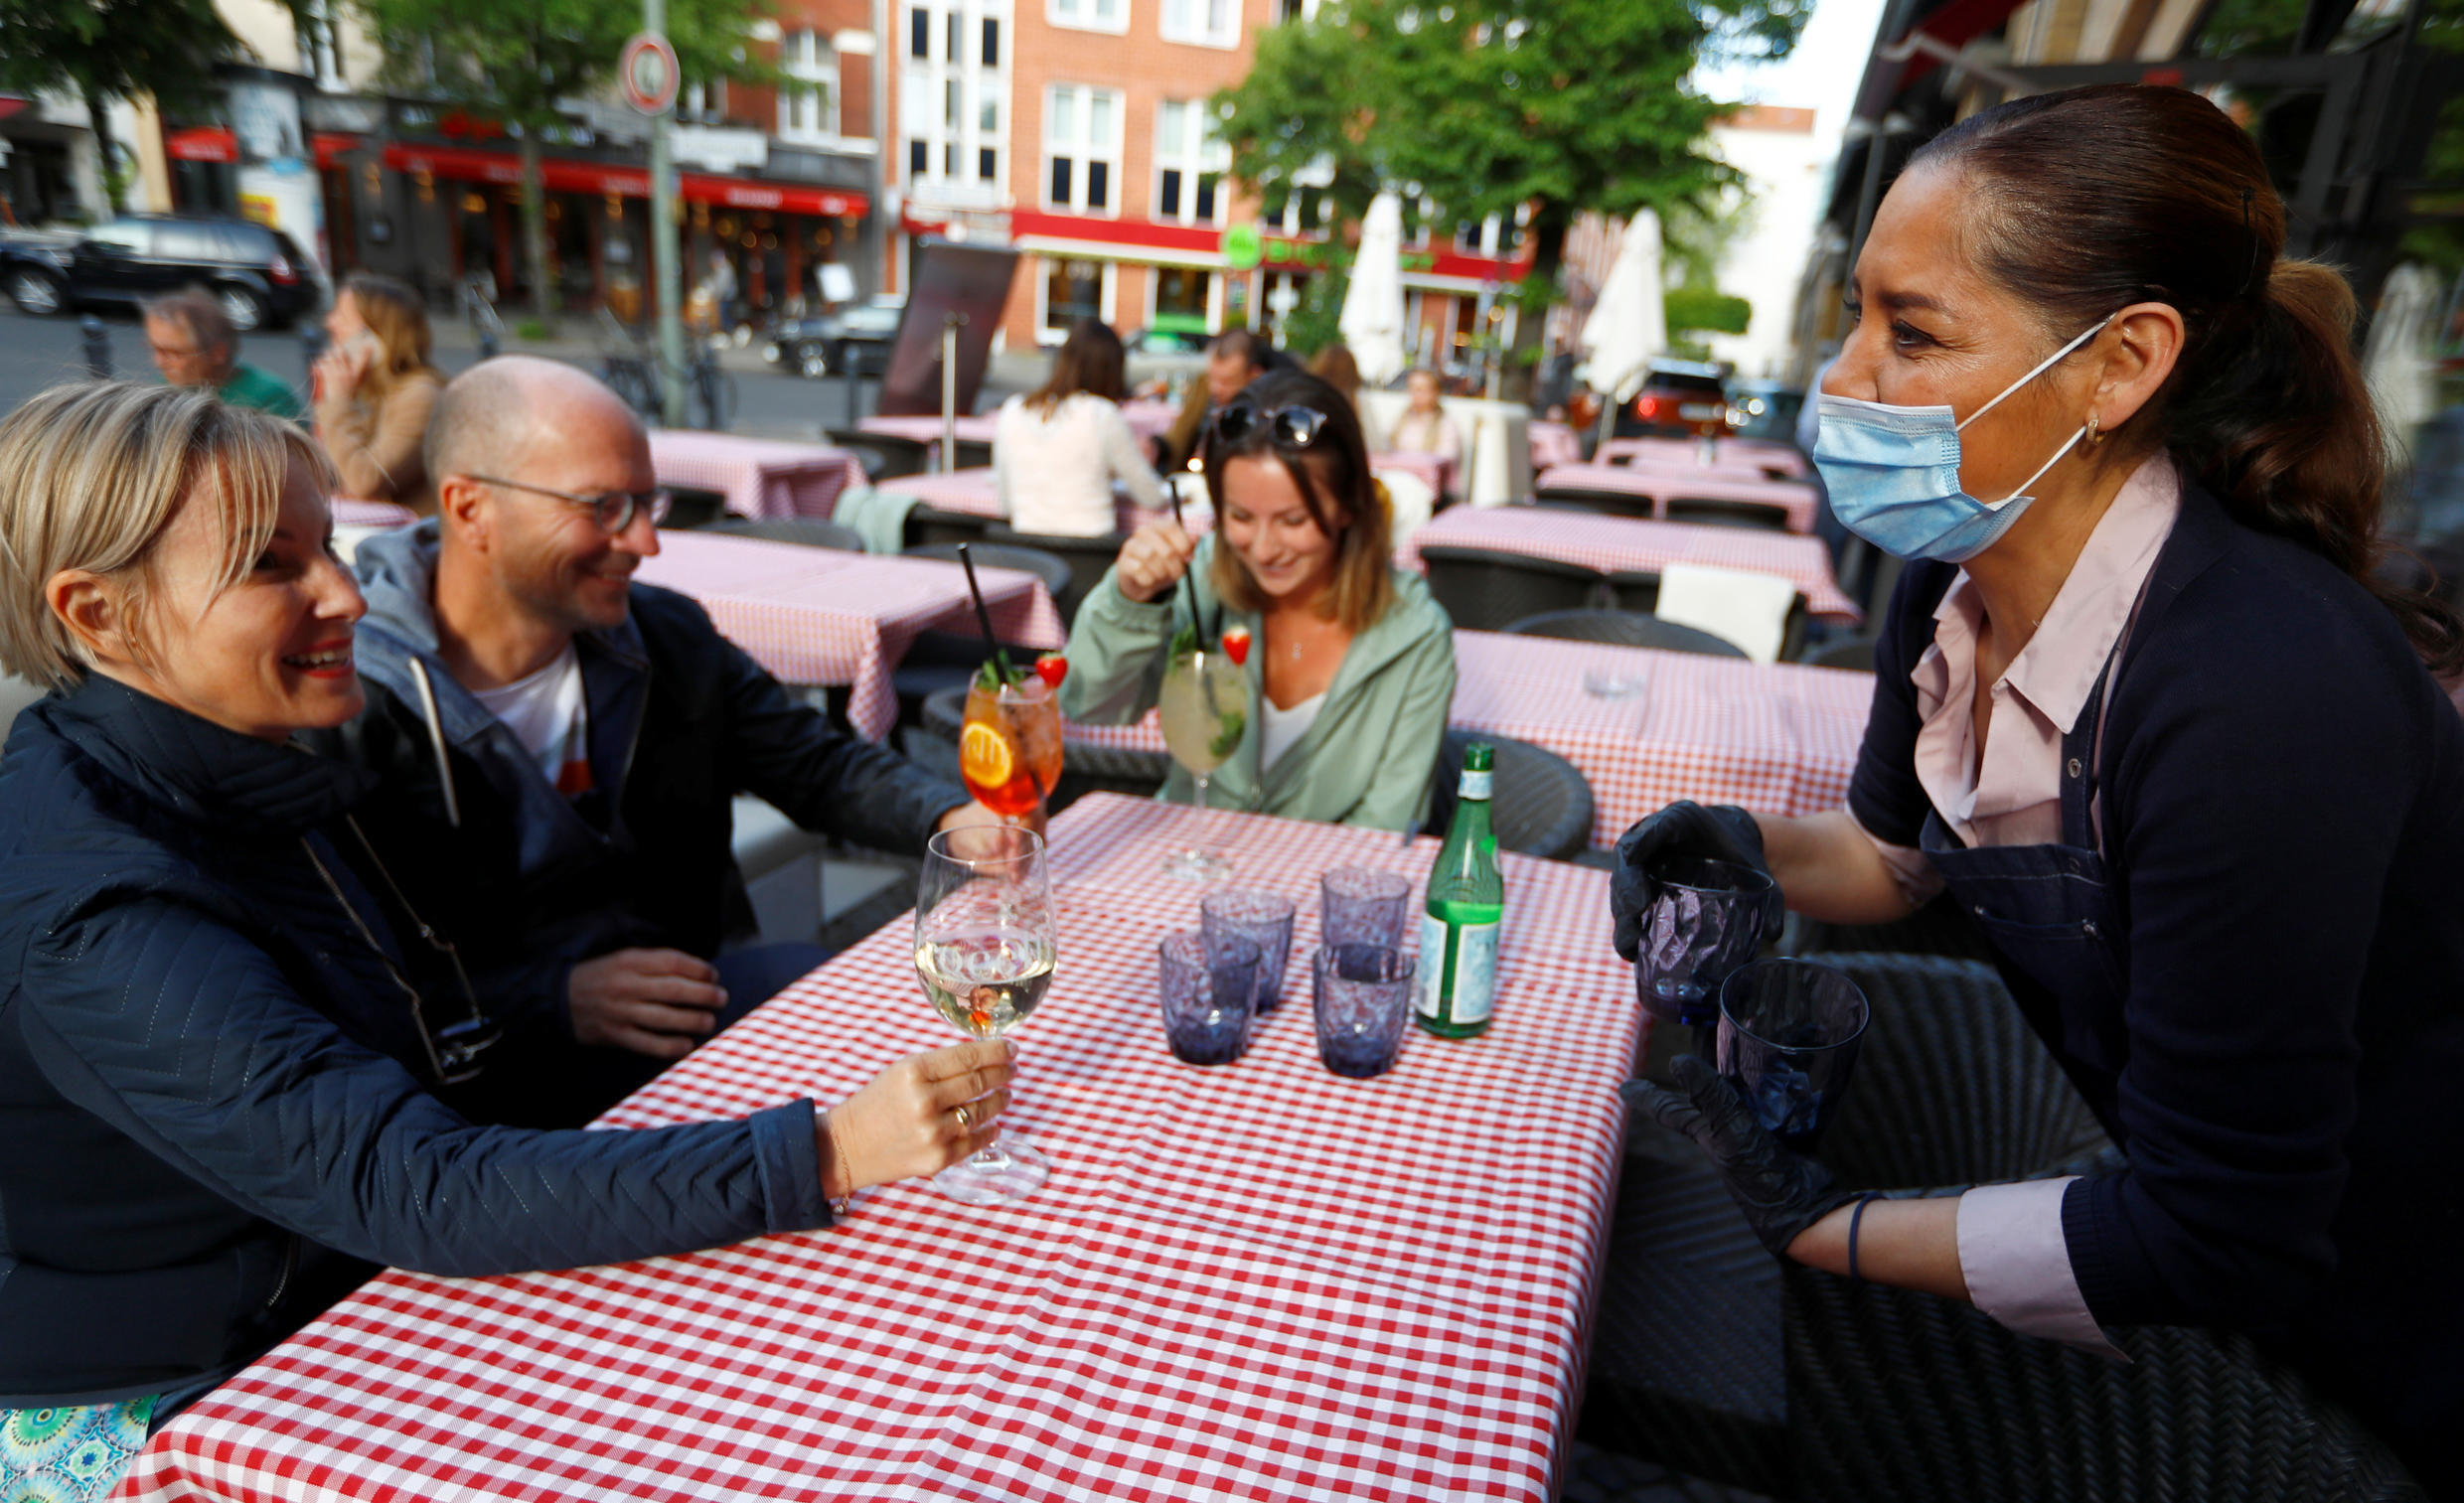 A waitress wearing a protective face mask talks to customers at Petrocelli's Bar, during the coronavirus disease (COVID-19) outbreak, in Berlin, Germany May 16, 2020.